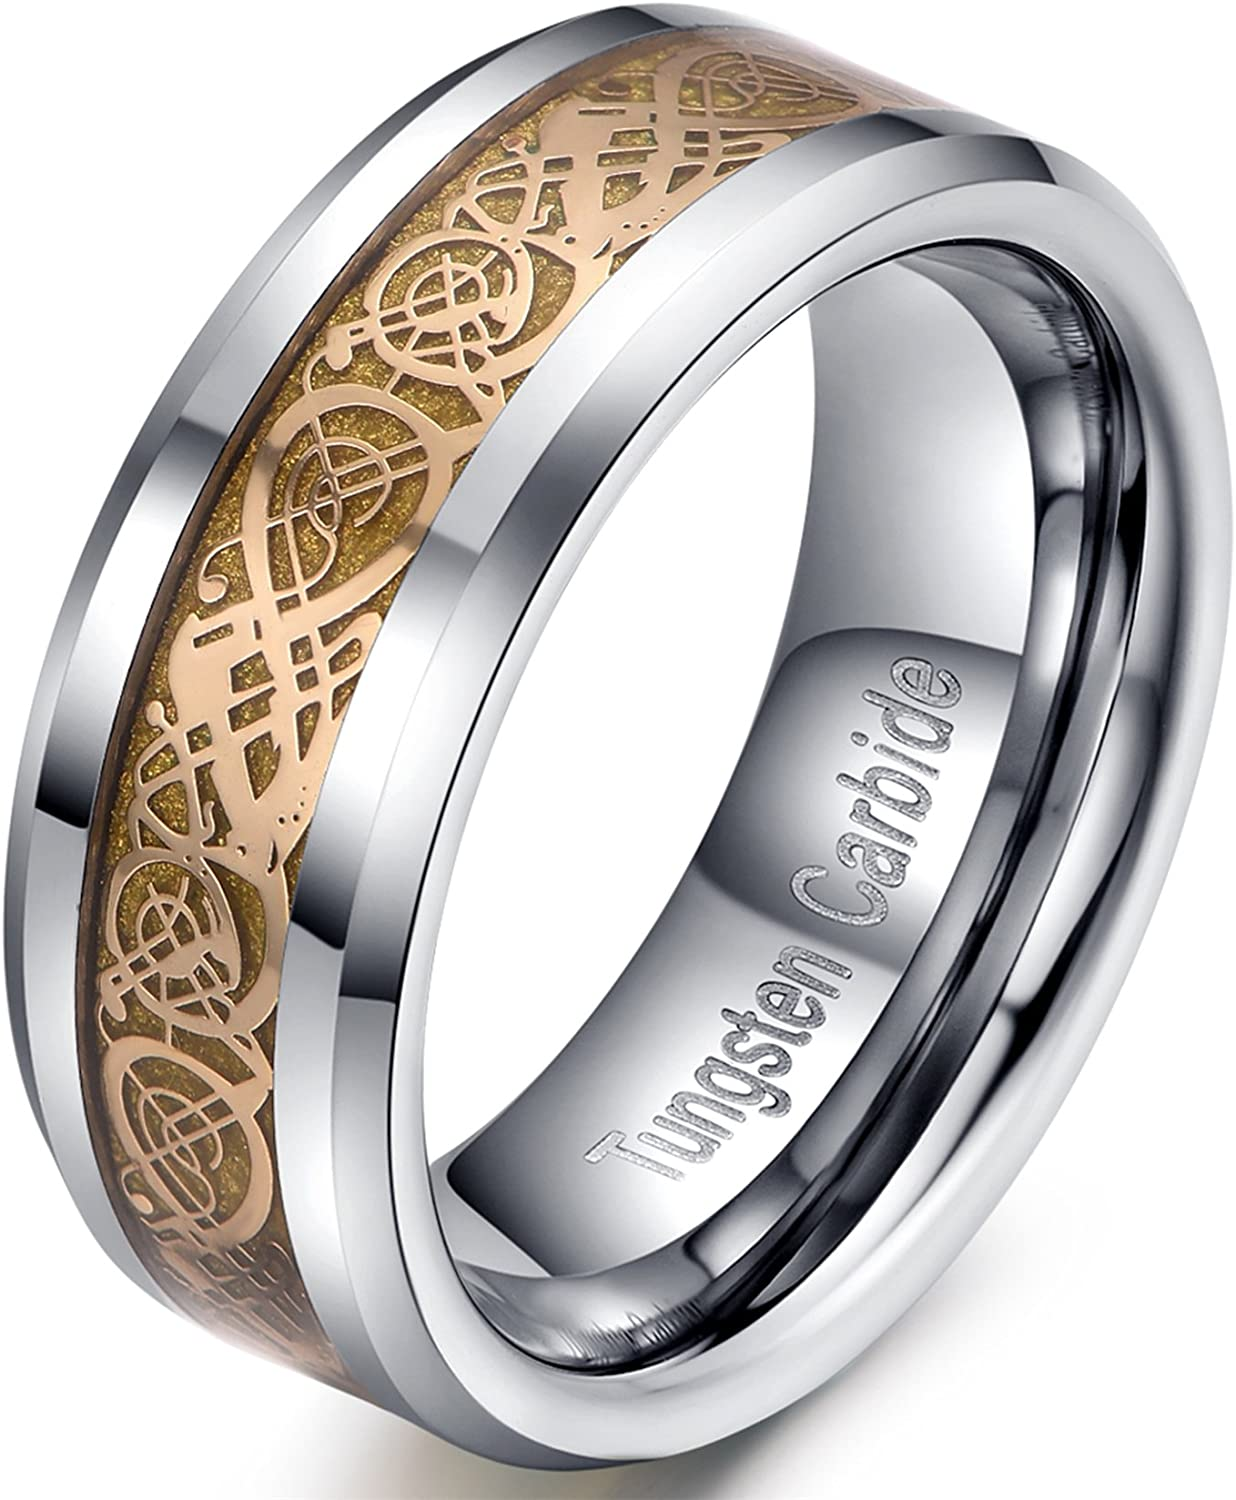 8mm Sales results No. 1 Gold Tungsten Ring supreme Wedding Celtic Concaved Kn with Band